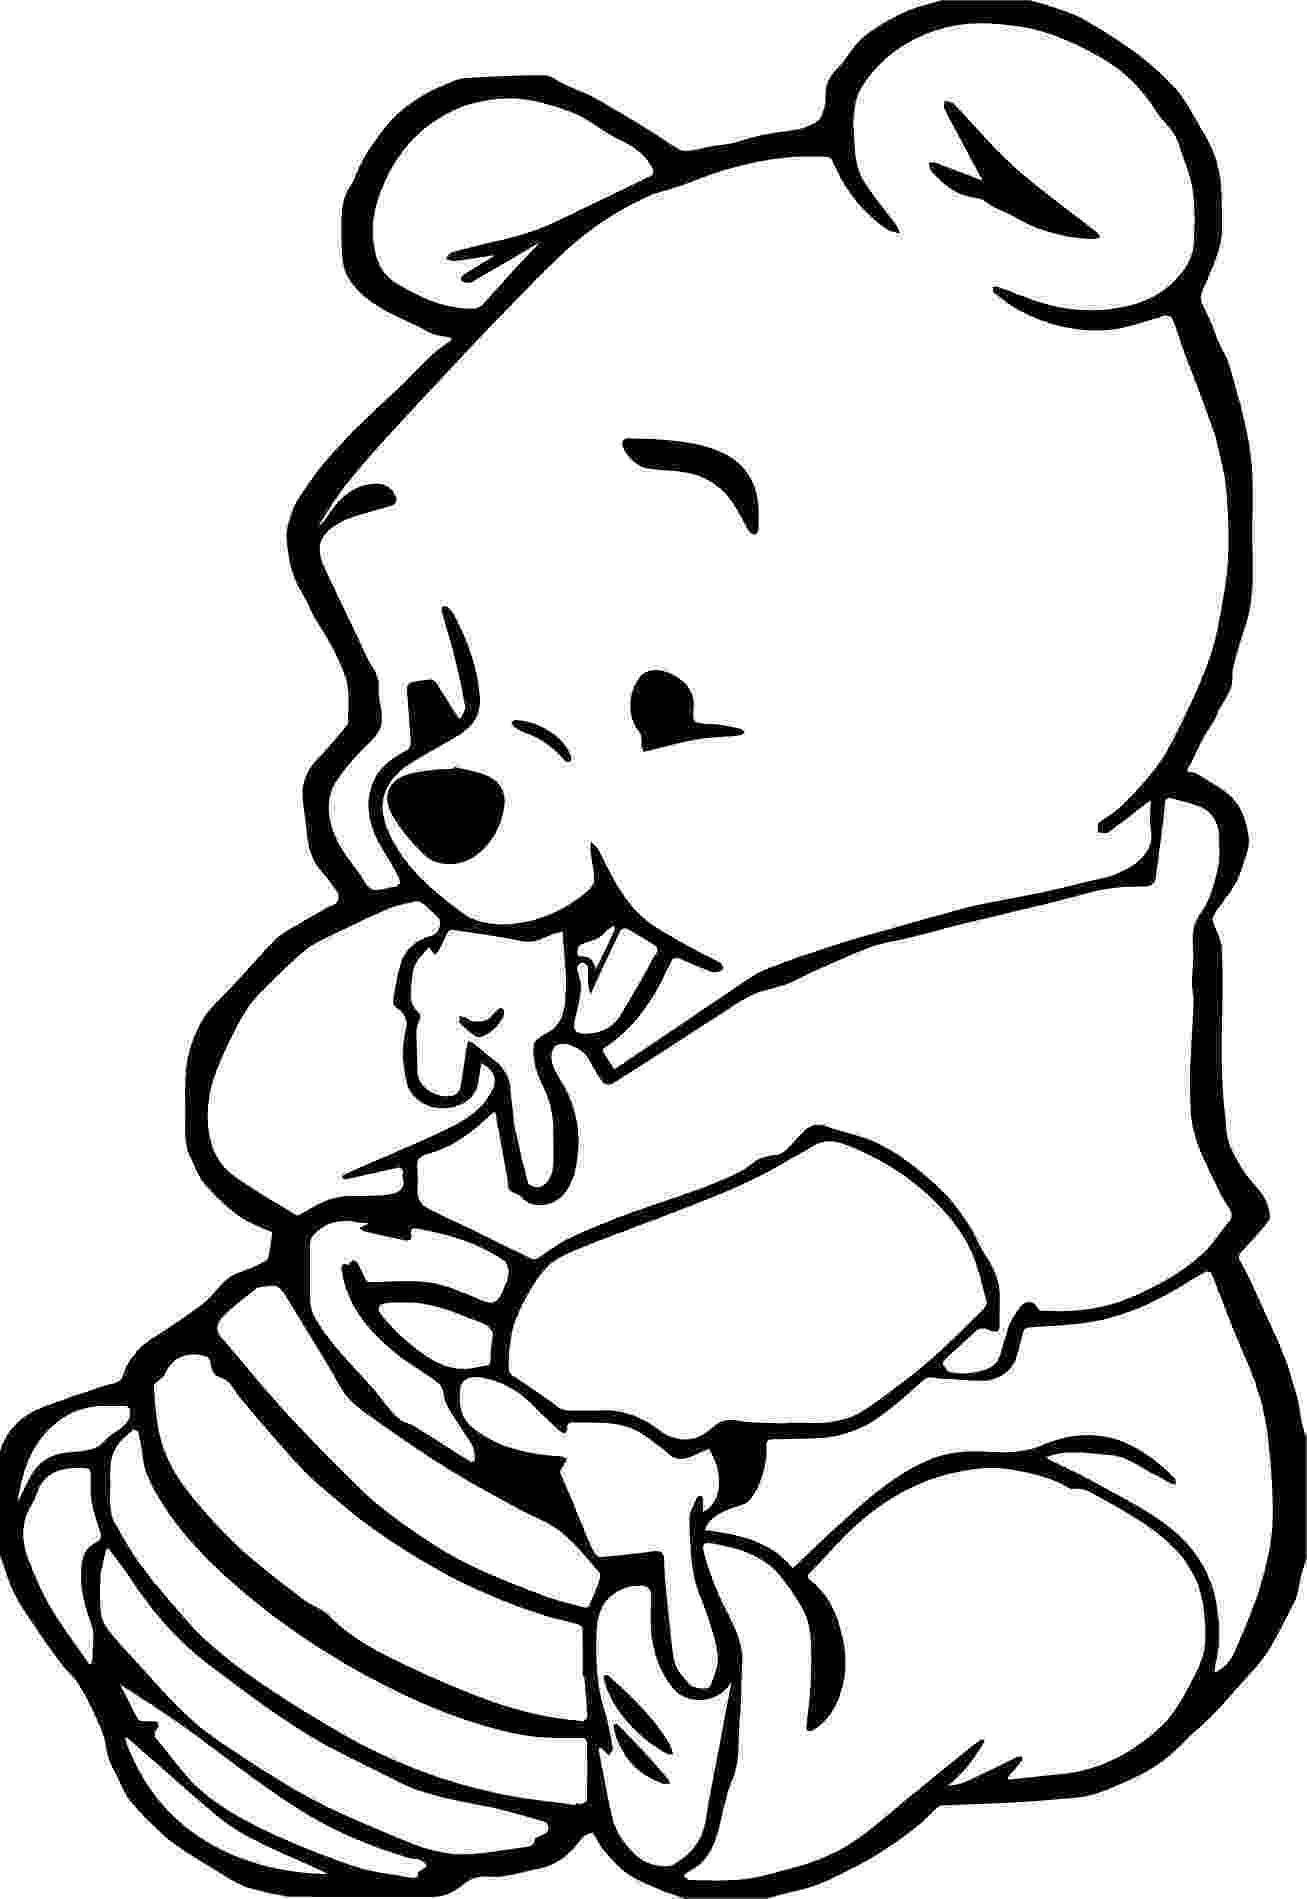 winnie the pooh colouring baby animal coloring pages best coloring pages for kids the winnie colouring pooh